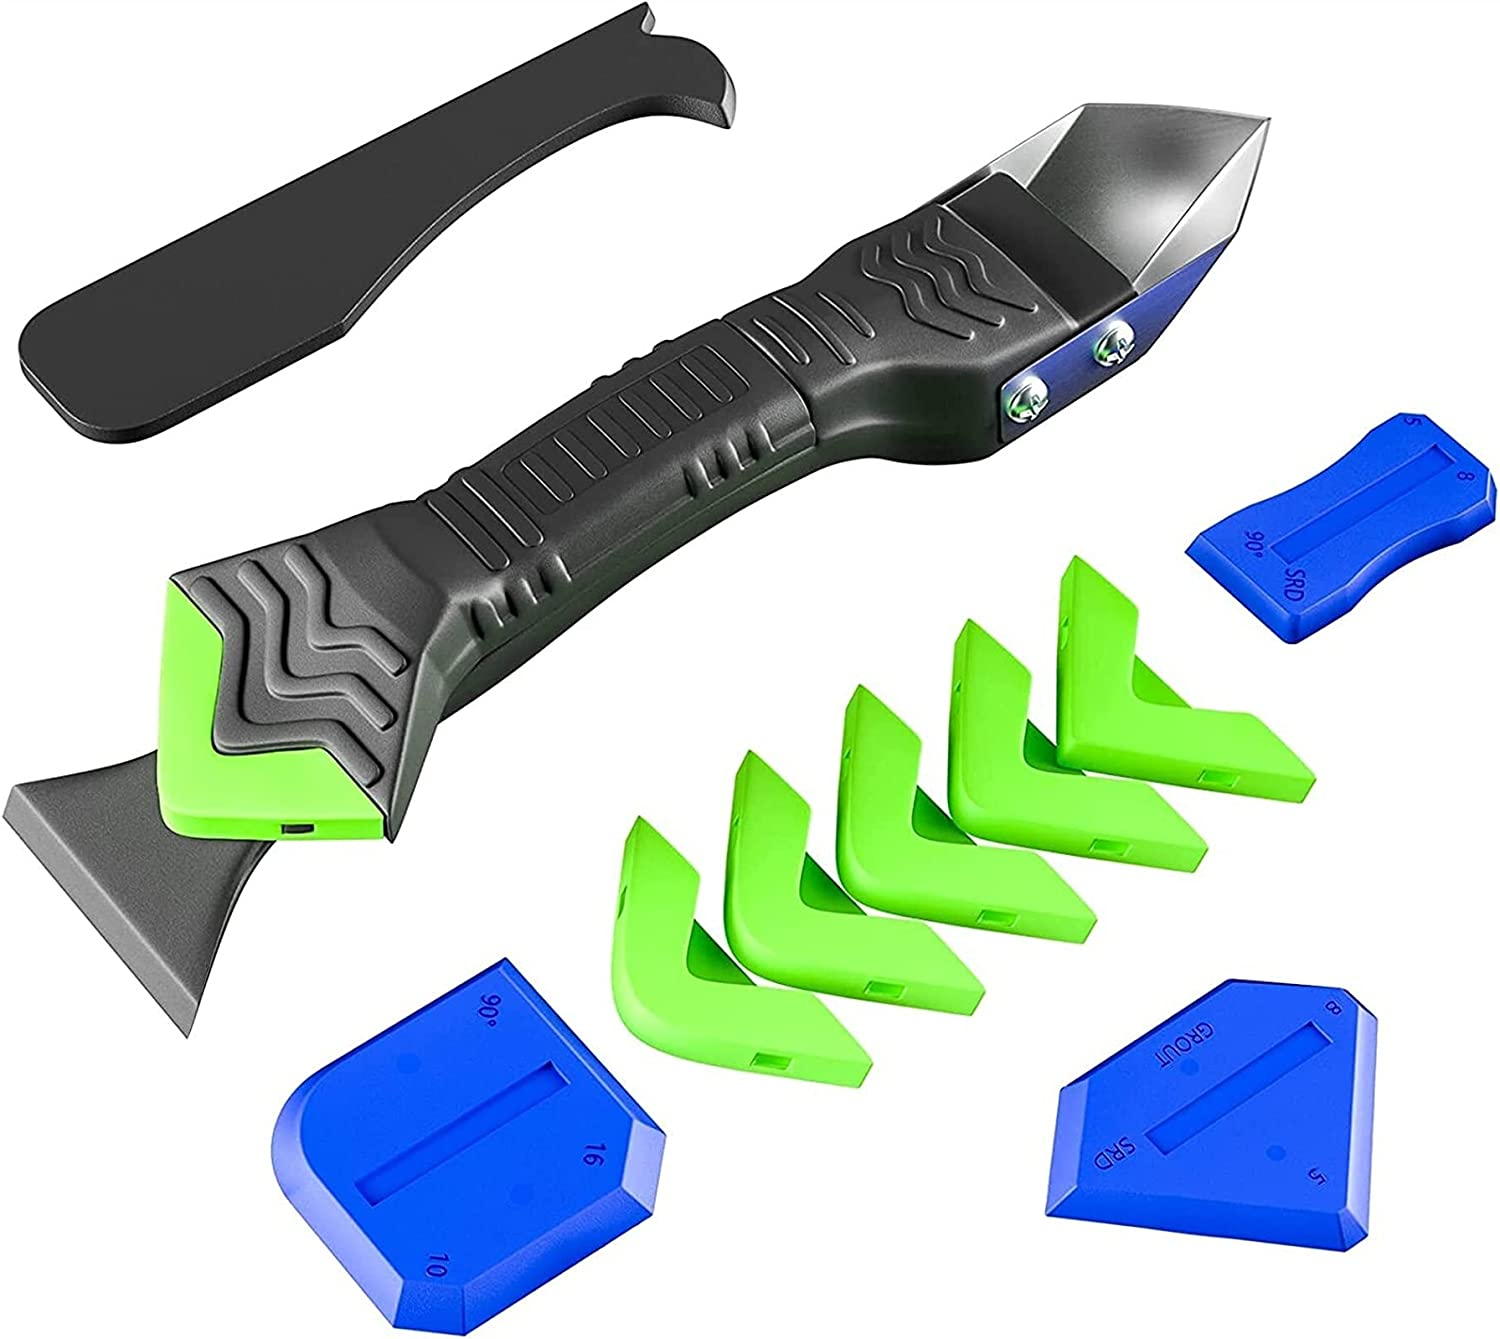 5 Great interest In 1 Caulking Tools Silicone Dallas Mall Stainless Caulk Tool Remover With